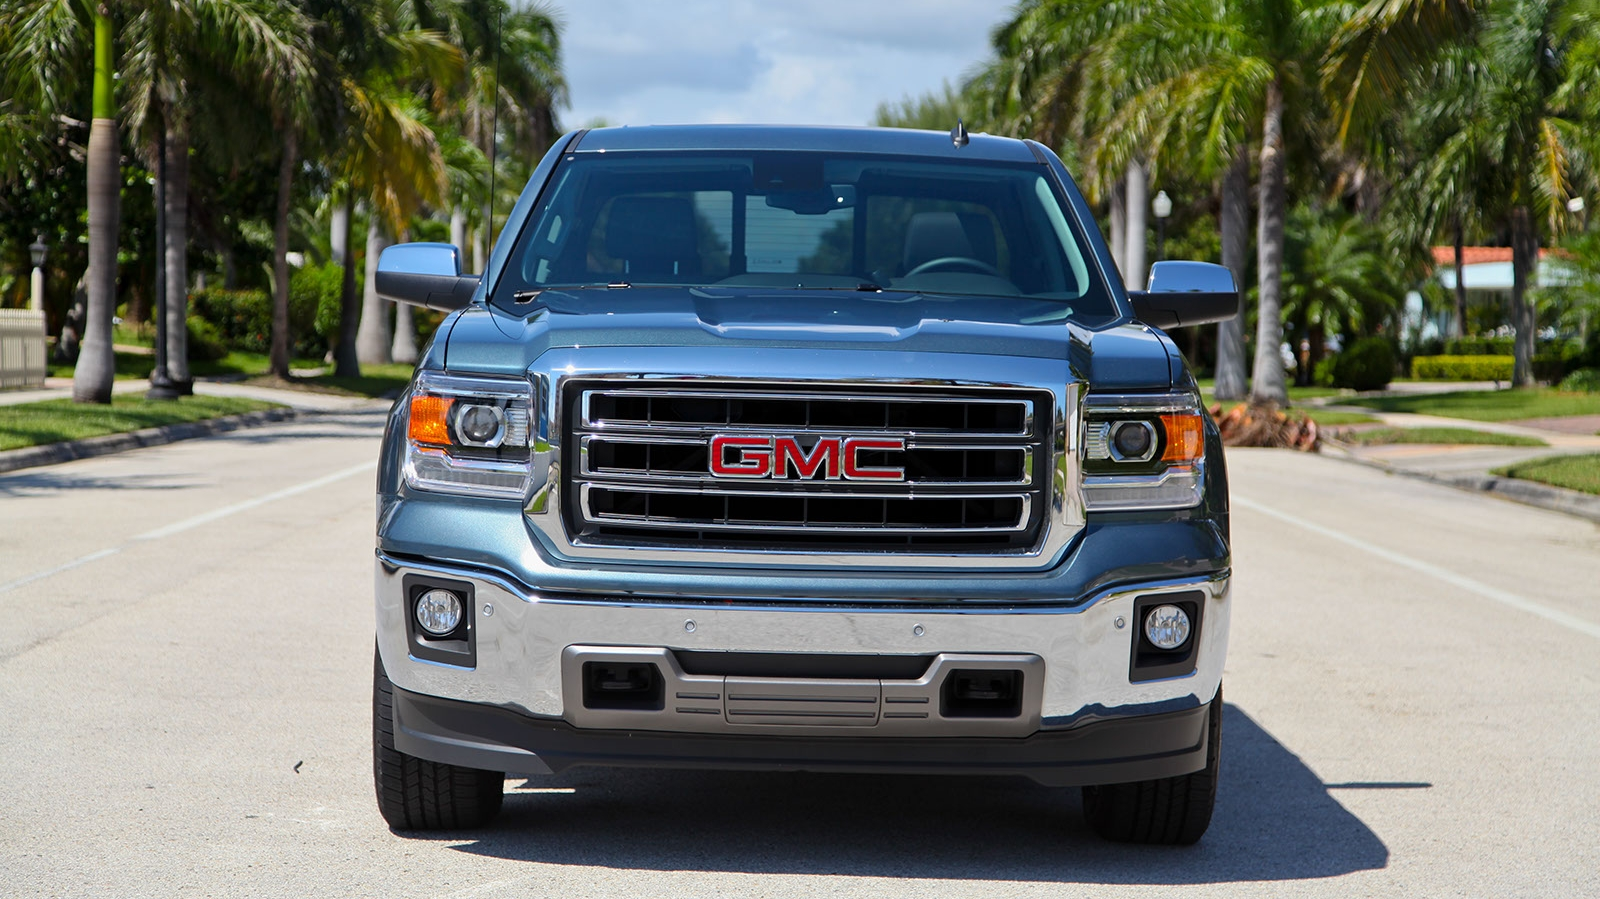 2019 GMC Sierra Expected To Debut March 1 In Detroit News - Gallery - Top Speed